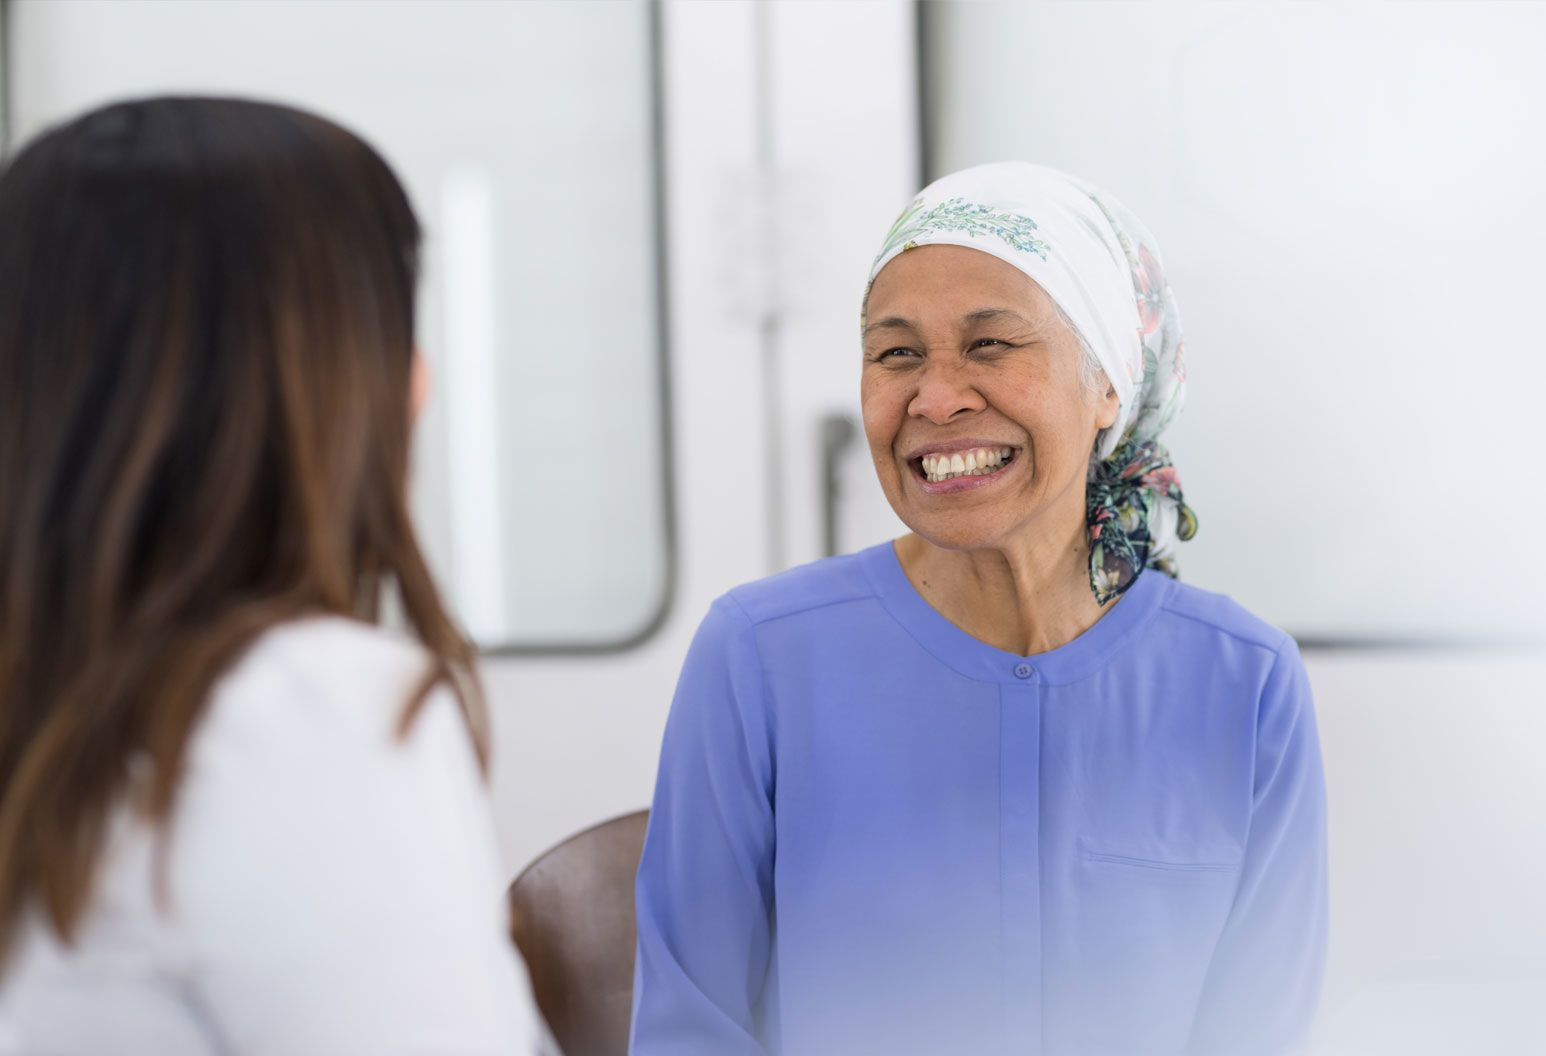 Female patient smiling at her doctor